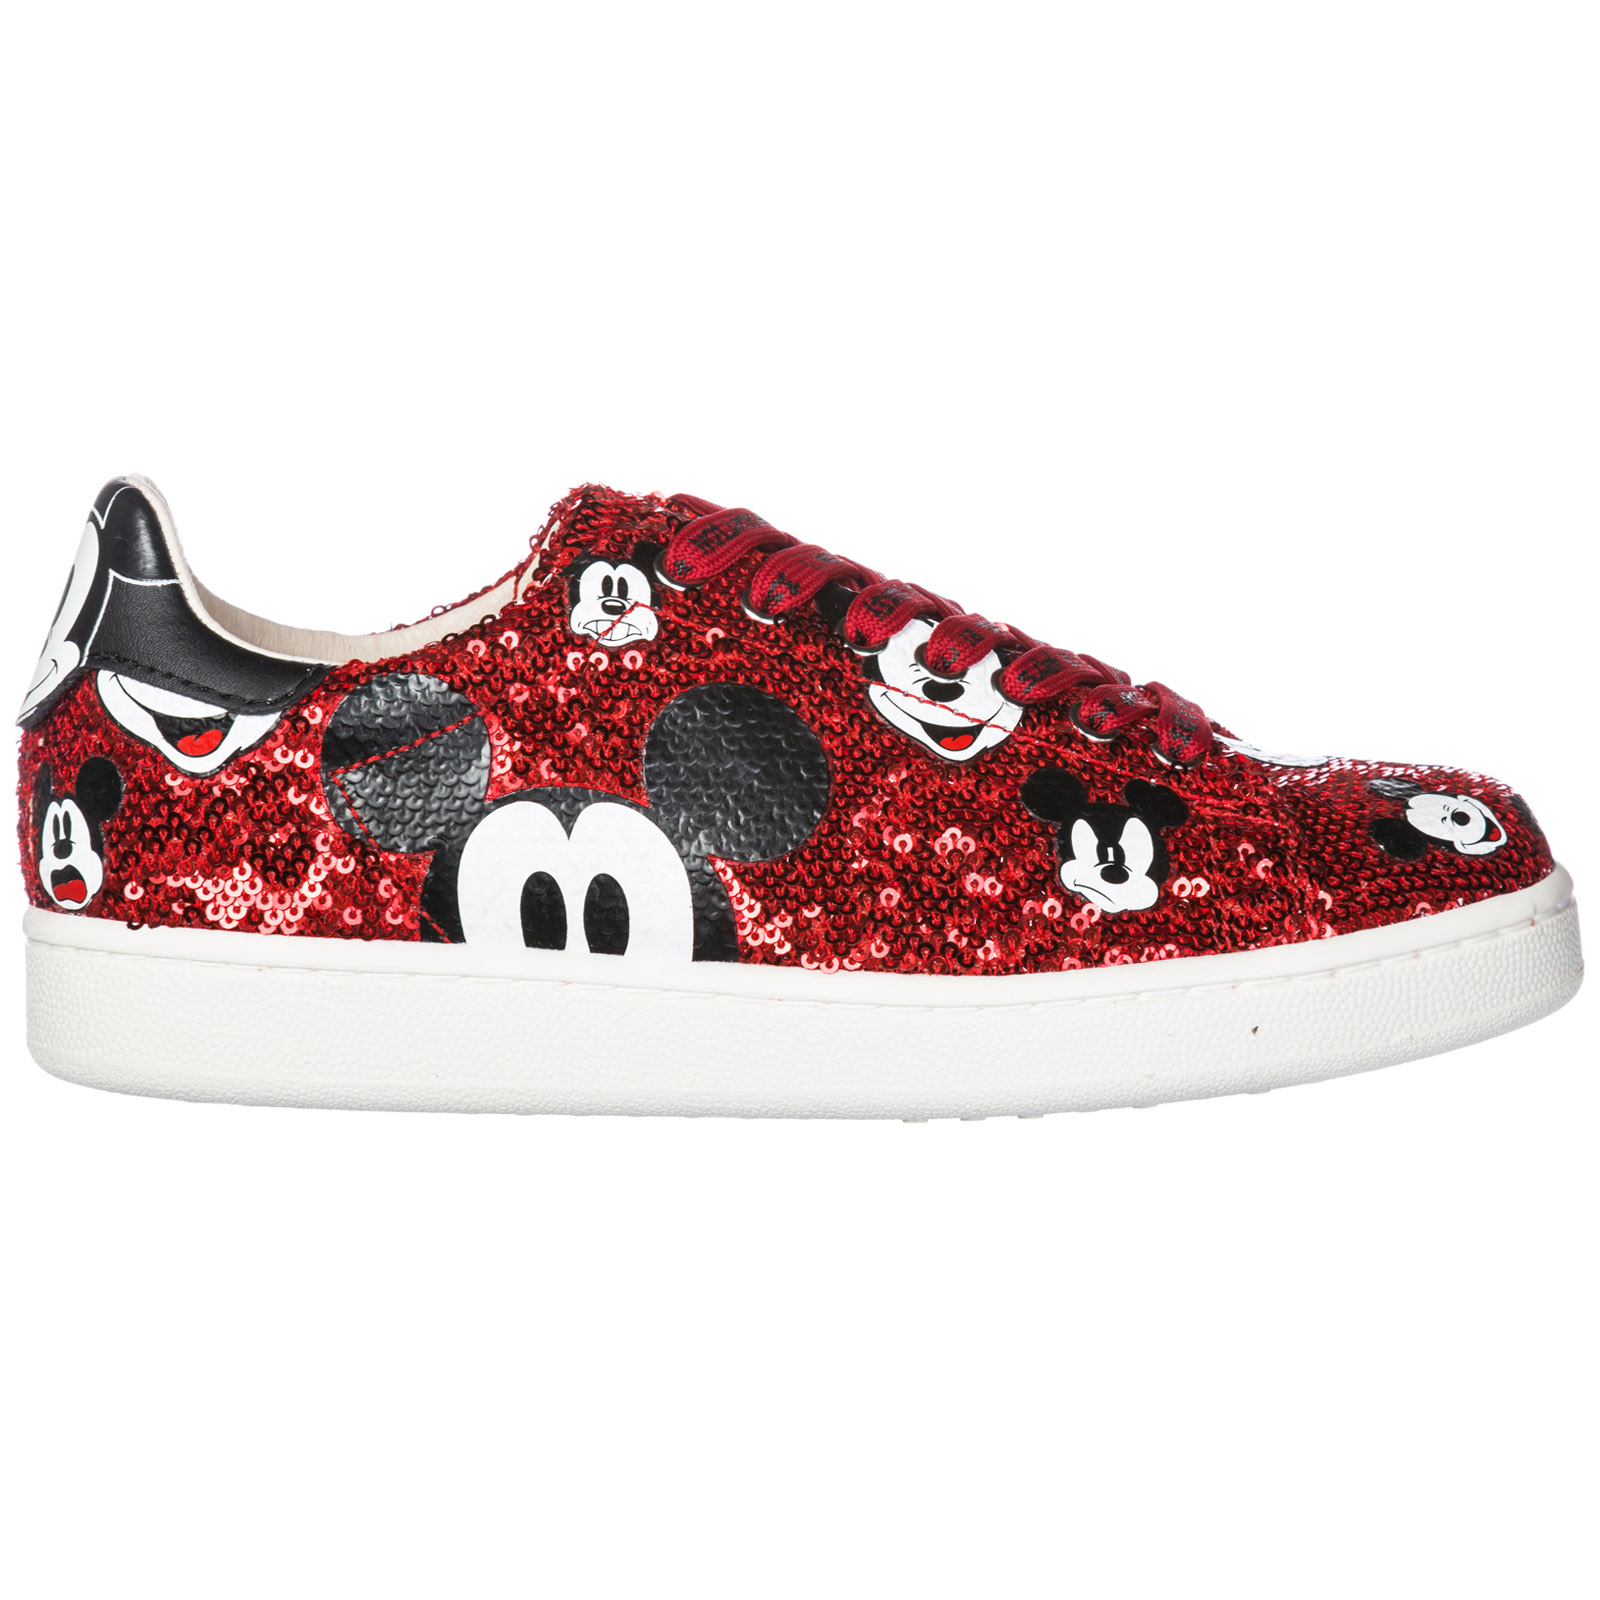 8f3ae43387c Chaussures baskets sneakers femme en cuir disney mickey mouse ...